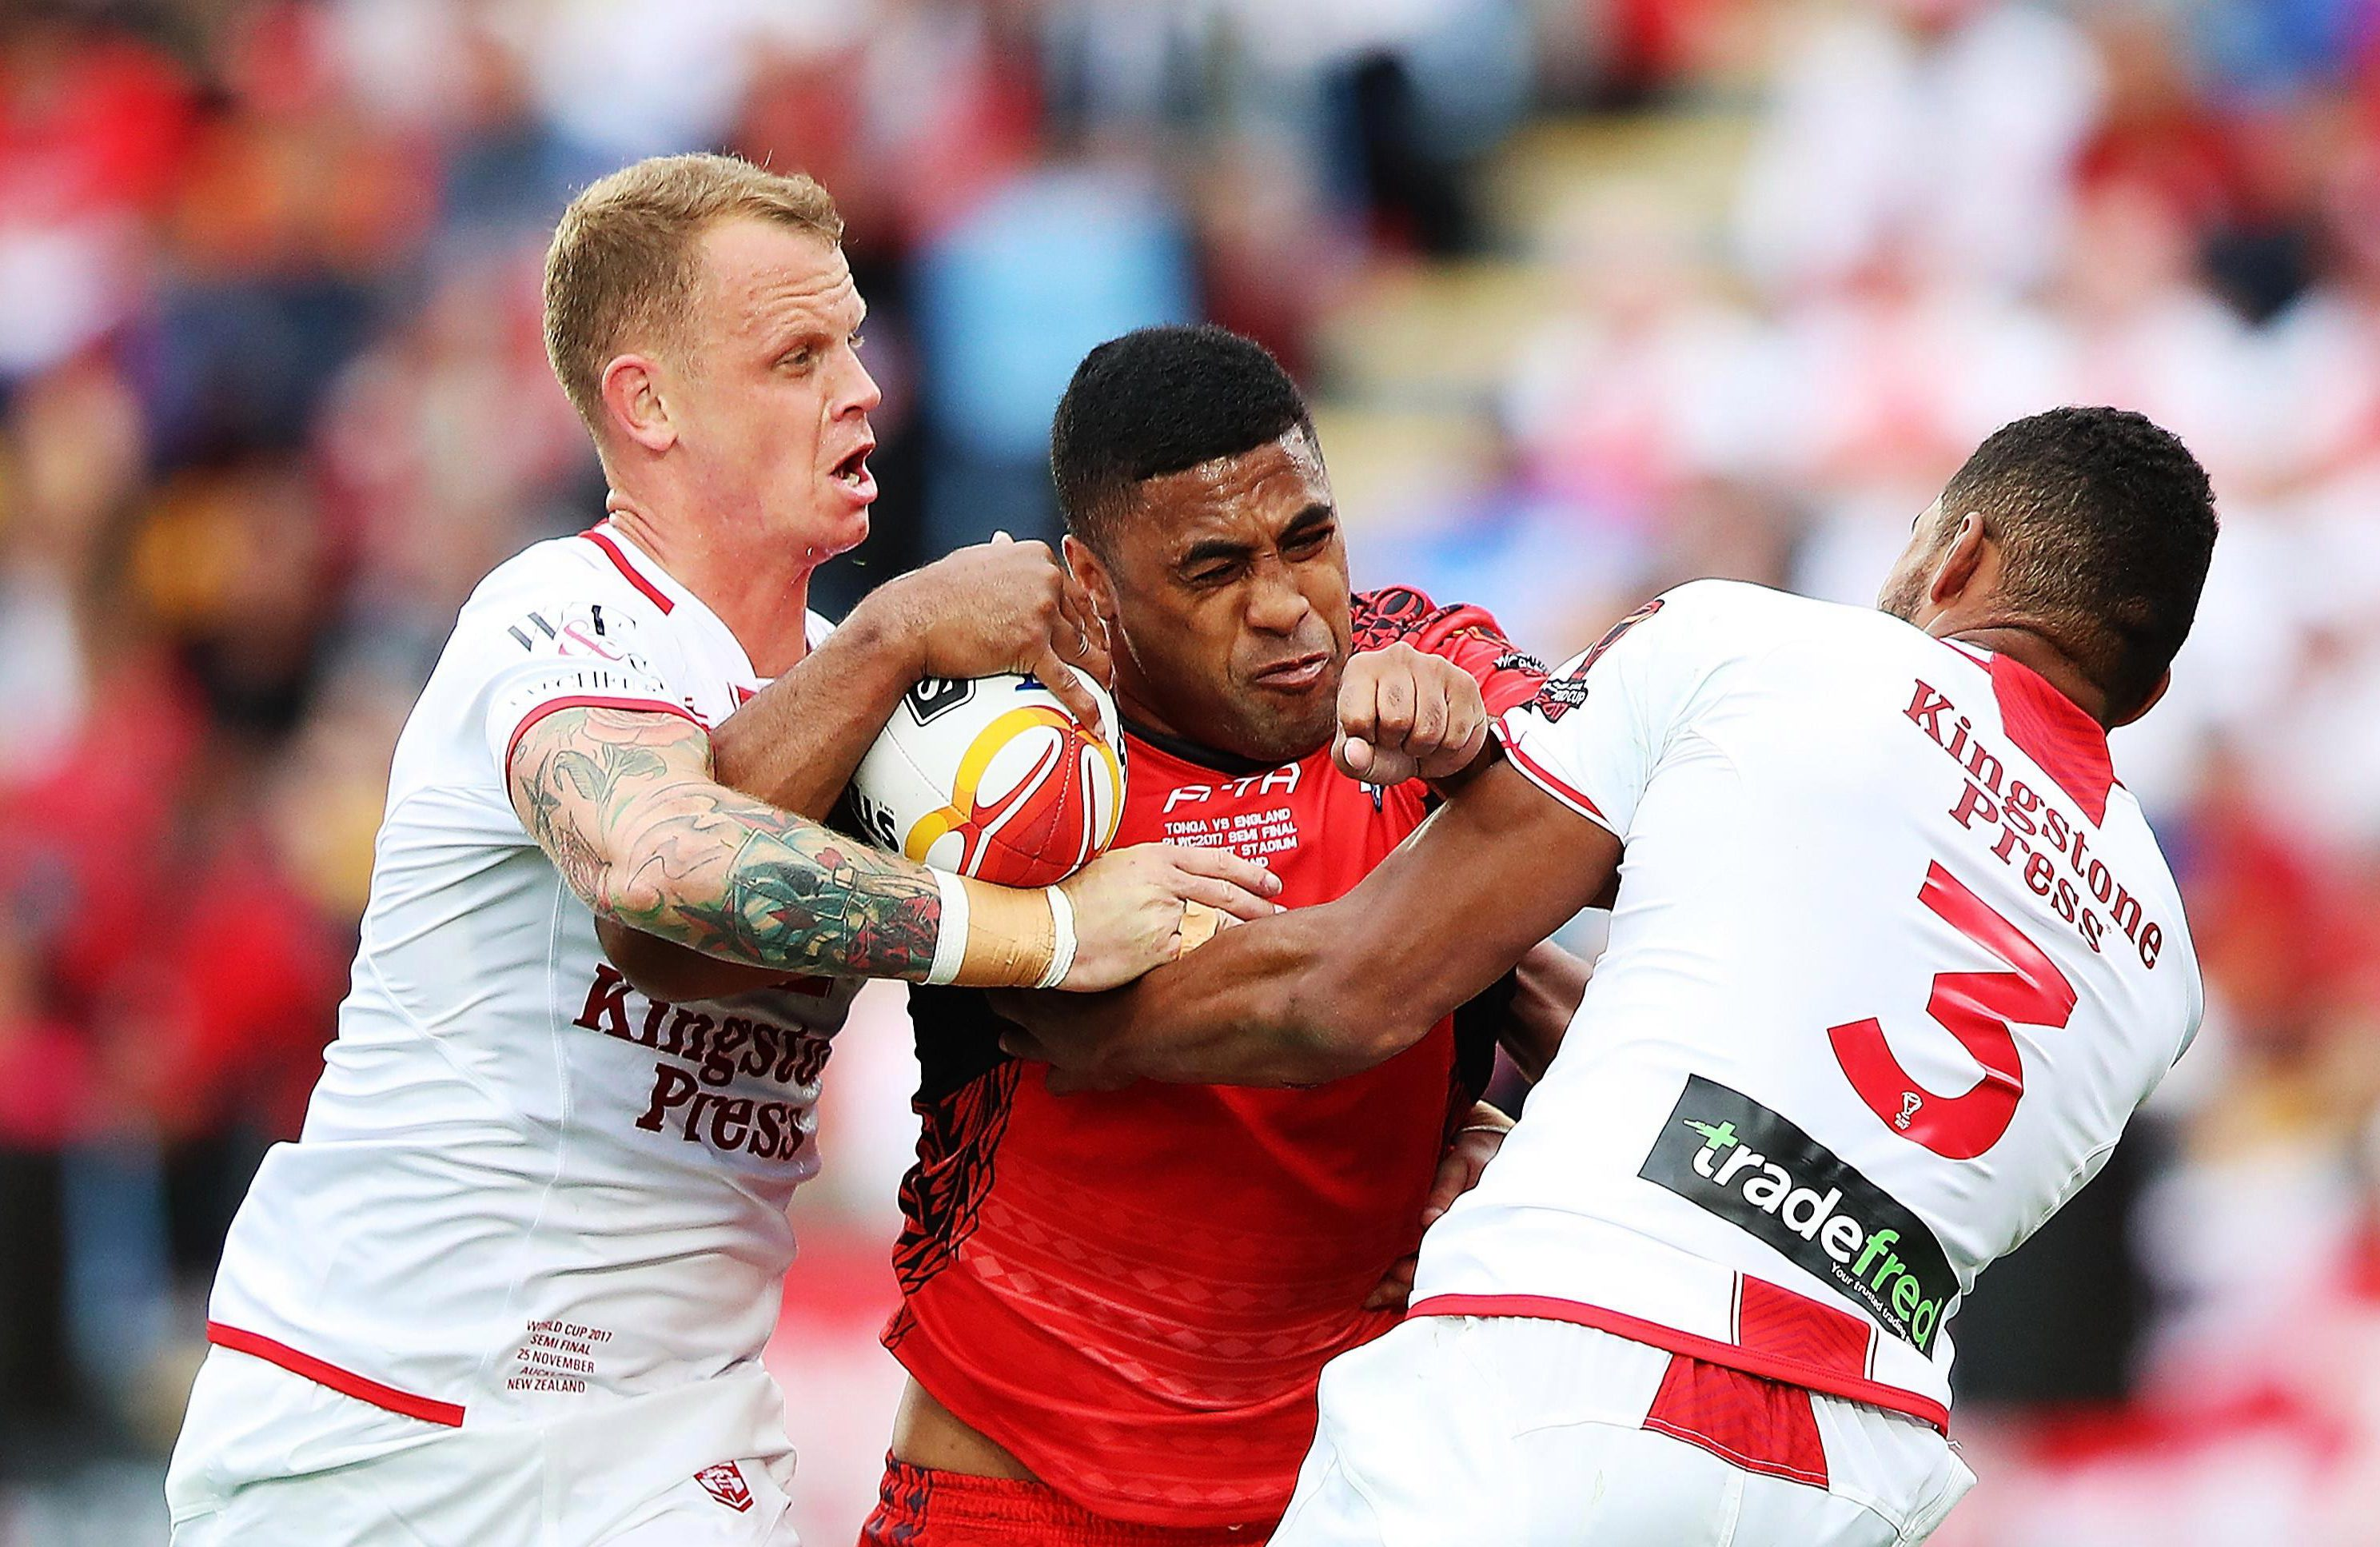 Murdoch-Masila was part of Tonga's side that was knocked out of the Rugby League World Cup by England